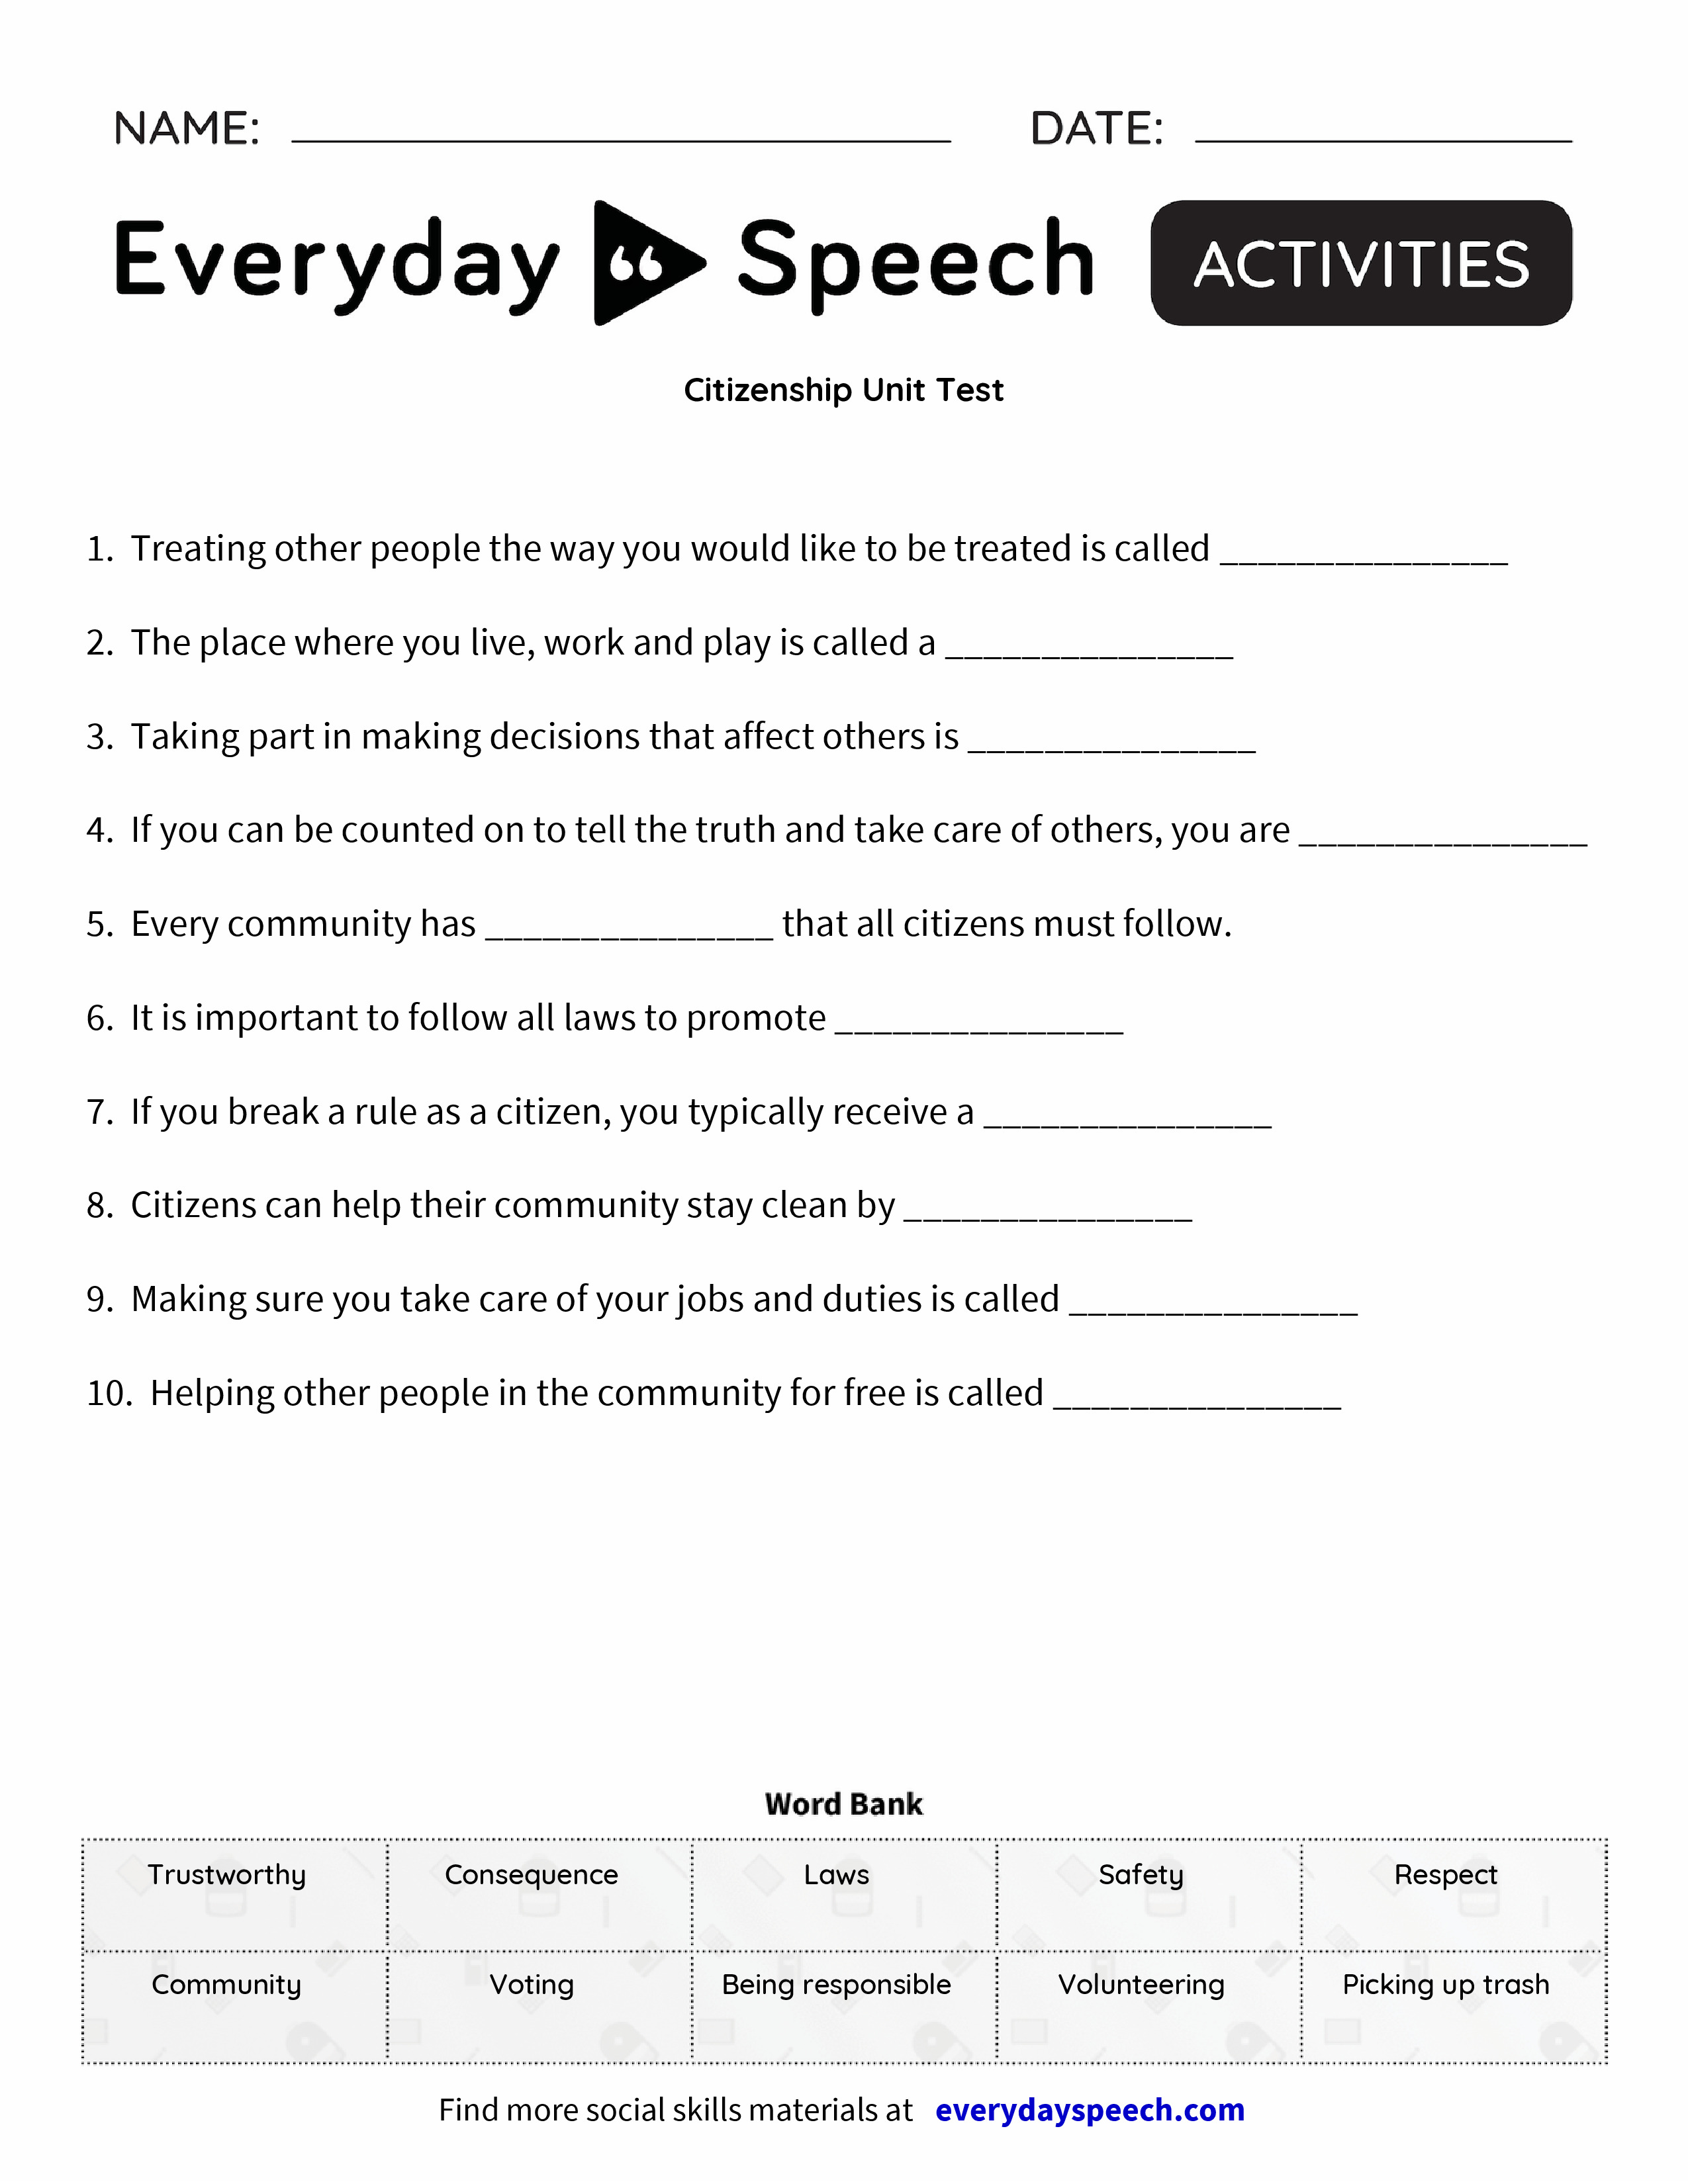 citizenship worksheets – tagn together with Good And Services Worksheet Printable Worksheets Citizenship Lesson additionally  also citizenship worksheets – tagn moreover 28 Citizenship In the World Worksheet Answers furthermore Causes Of World War 1 Worksheet First Worksheets 2 Art Lesson World moreover  as well Citizenship In The  munity Worksheet Graphics Worksheets For Grade together with Good Citizenship Worksheet   Social Stus   Pinterest as well munity Worksheets First Grade    munity worksheets first grade likewise What is a Good Citizen    Lesson Plan   Education     Lesson plan further good citizenship worksheets – hieudt info moreover  likewise Citizenship Unit Test   Everyday Sch   Everyday Sch together with Being a Good Citizen at Home  at   and in the  munity as well Citizenship in the  munity   MeritBadgeDotOrg. on citizenship in the community worksheet